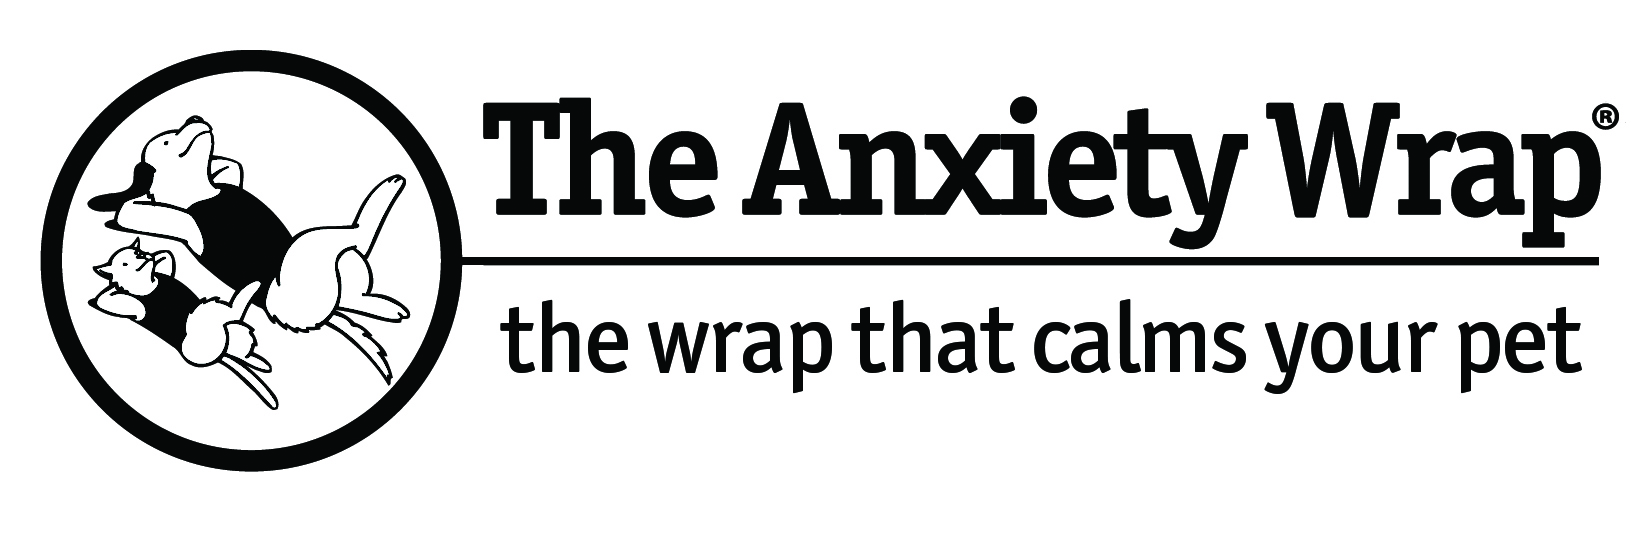 The Anxiety Wrap